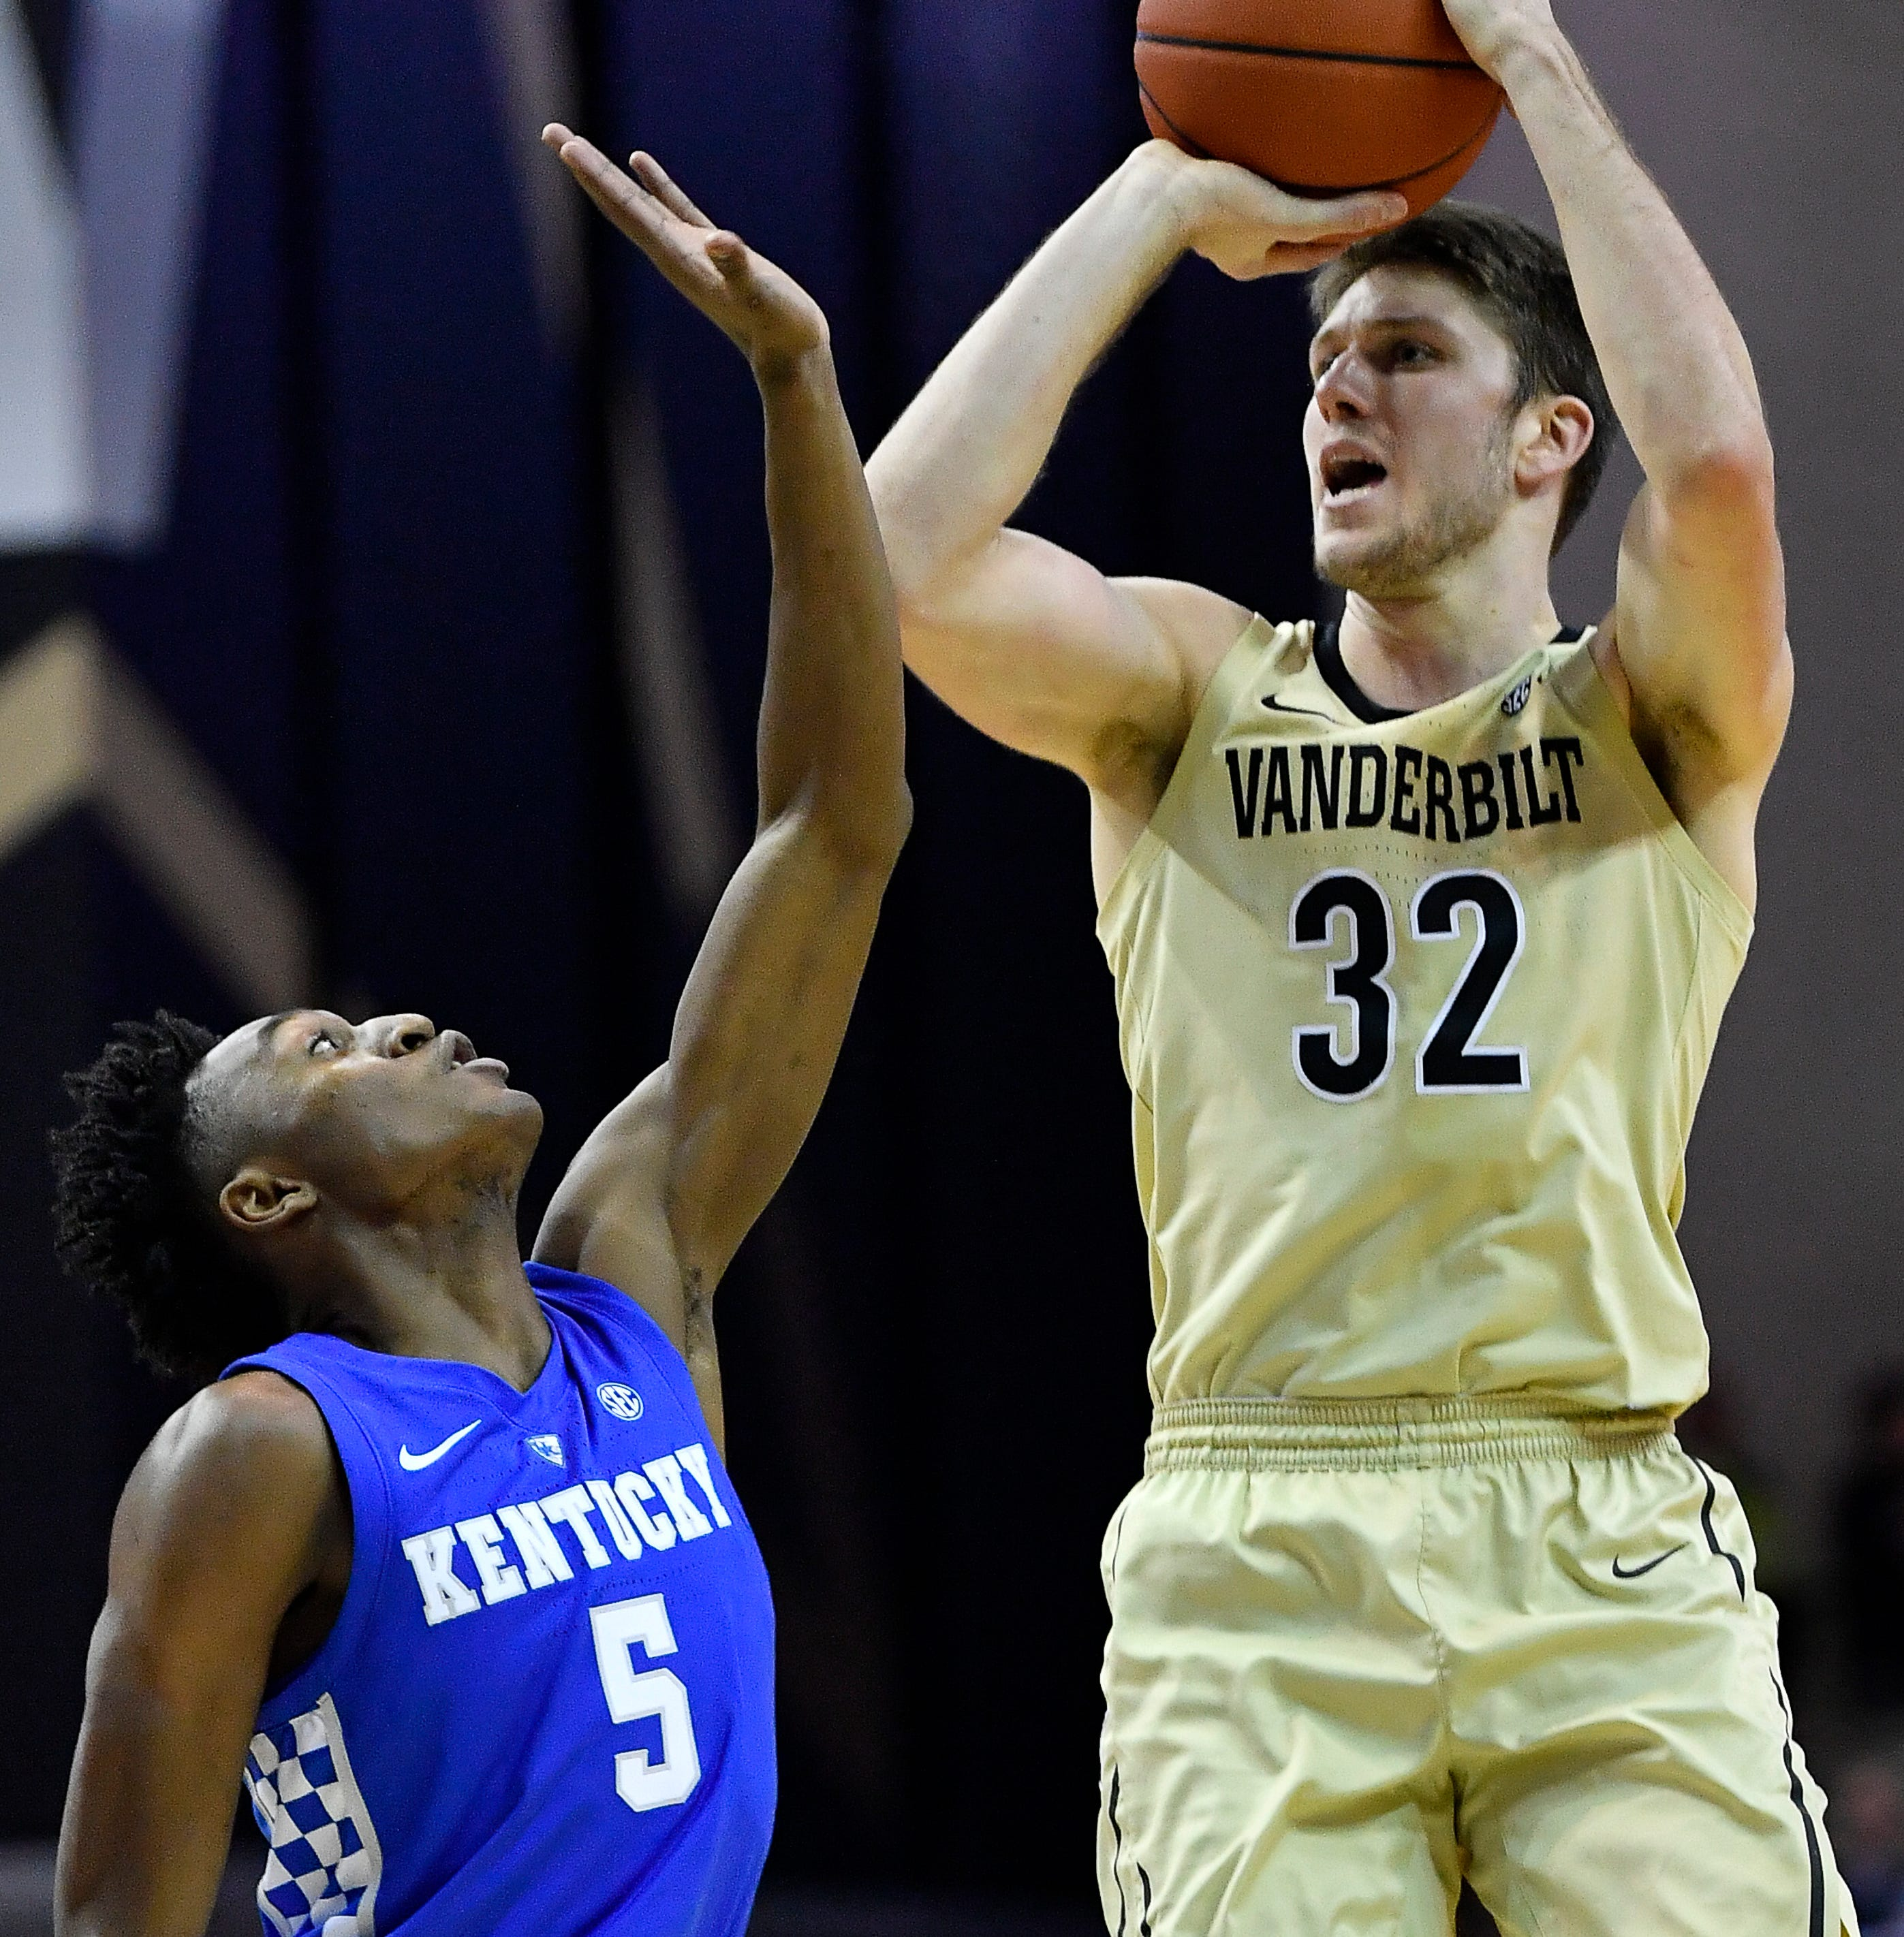 Vanderbilt basketball: Matt Ryan transfers to Chattanooga, trims Jerry Stackhouse's first team